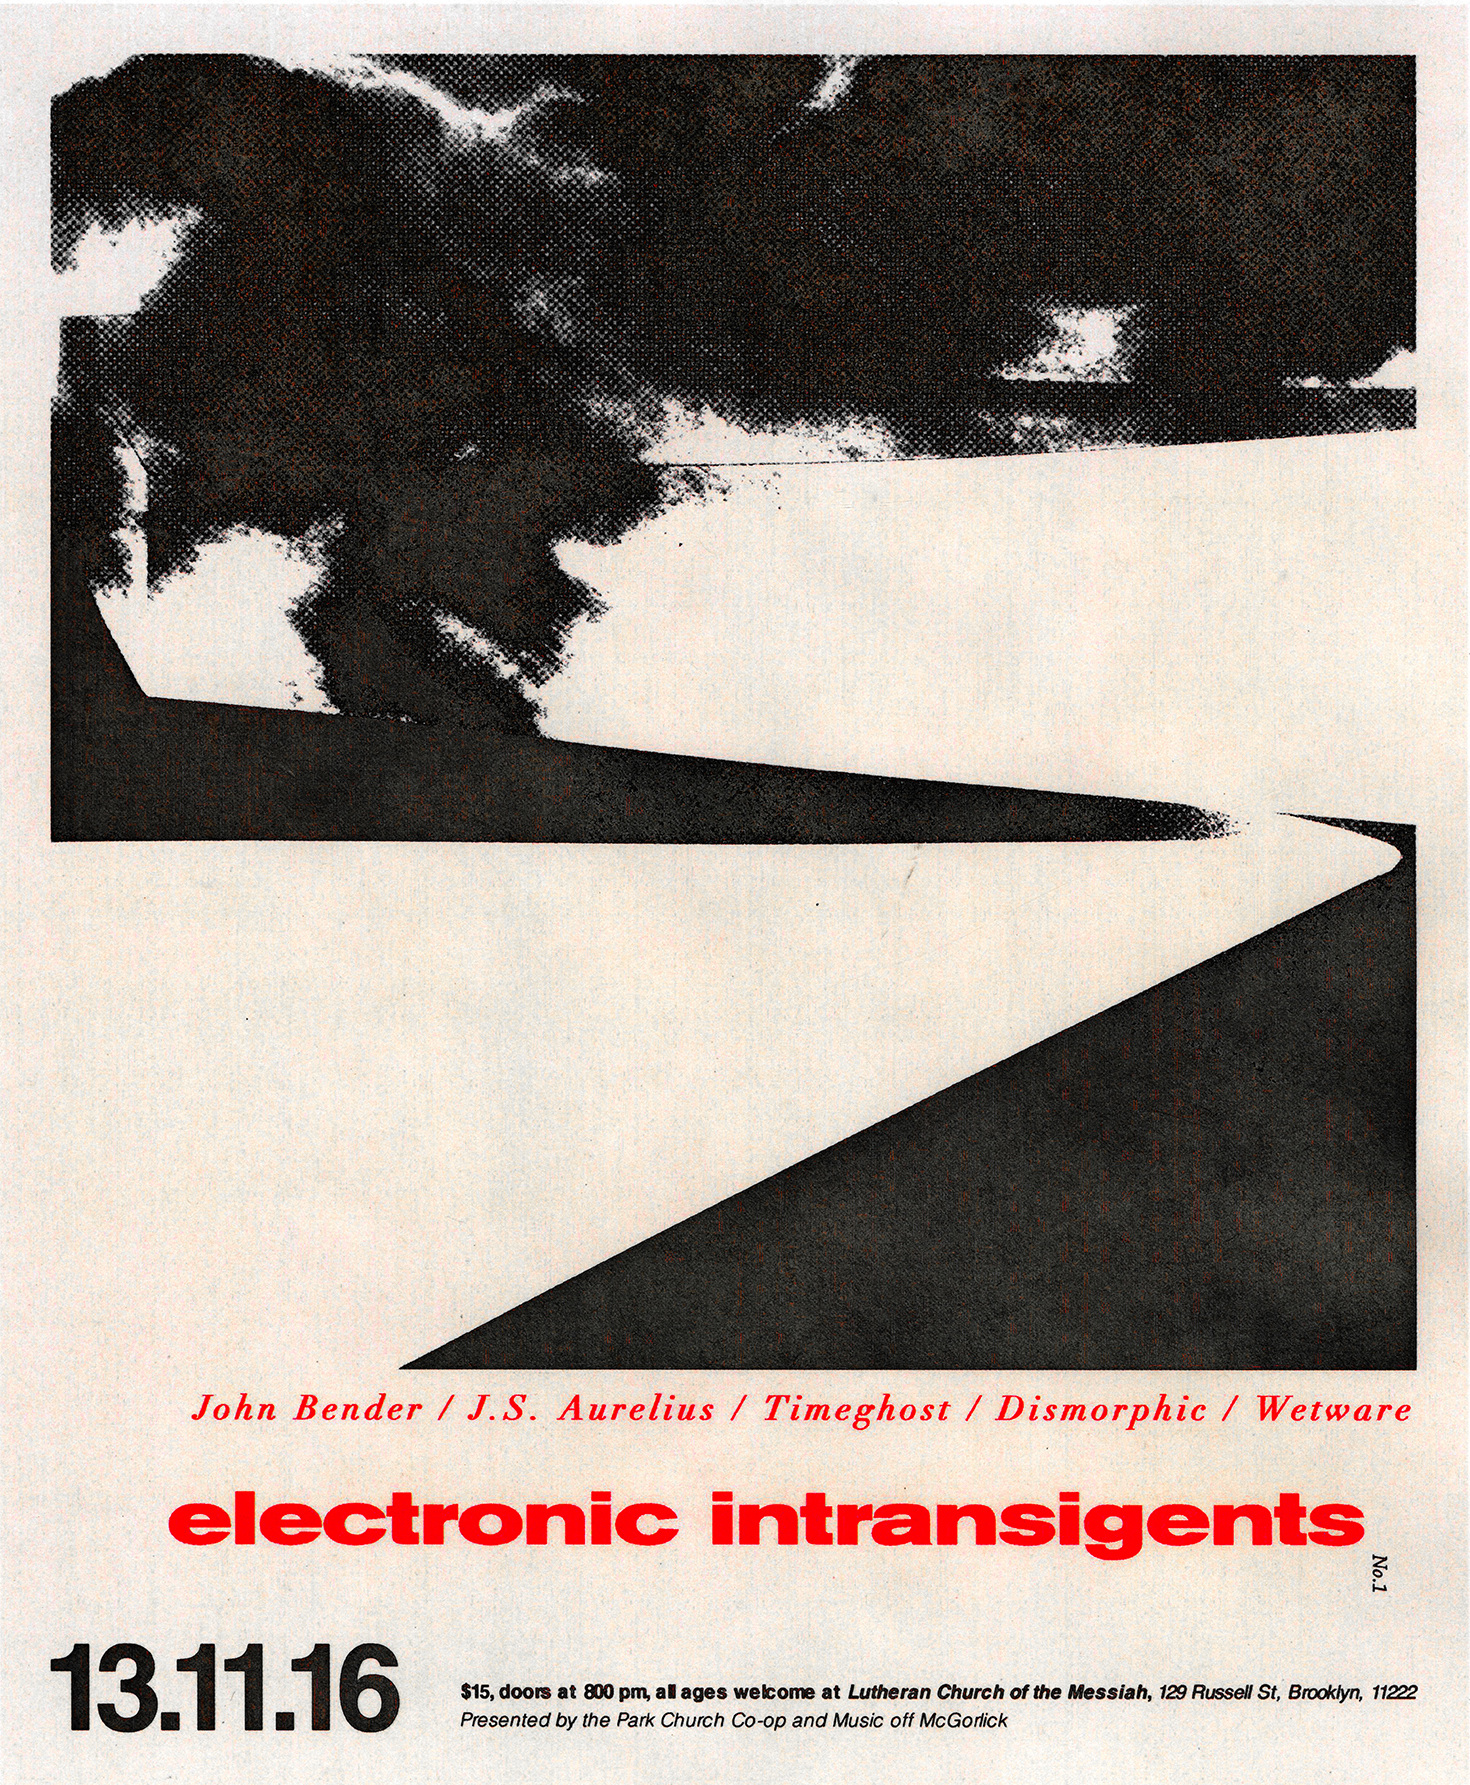 electronic-intransigents-no.1-web_1470.jpg